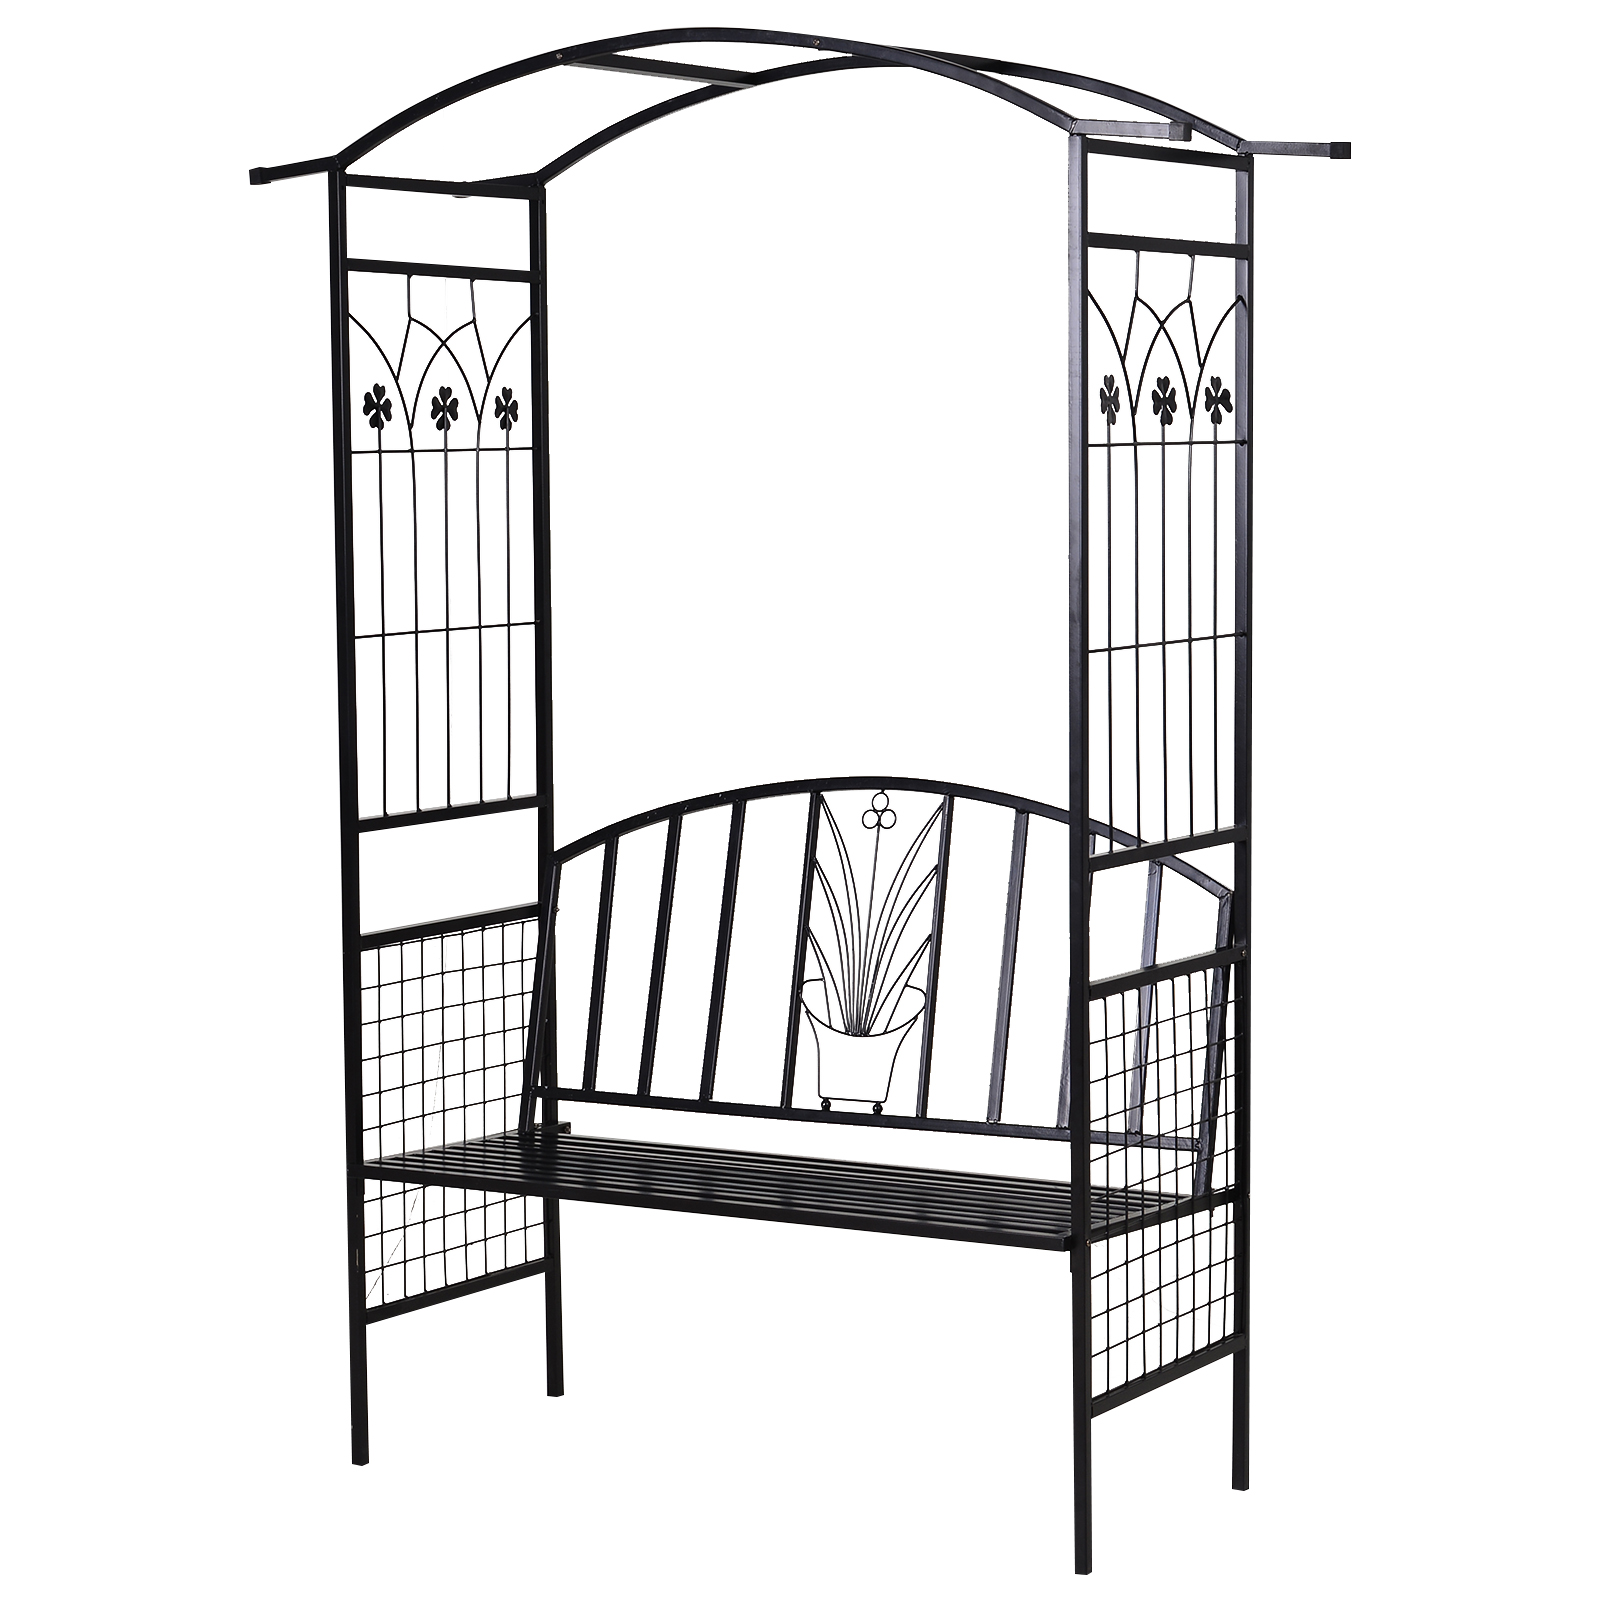 Outsunny Steel Frame Outdoor Garden Arch w/ 2-Seater Bench Flower Climber Black